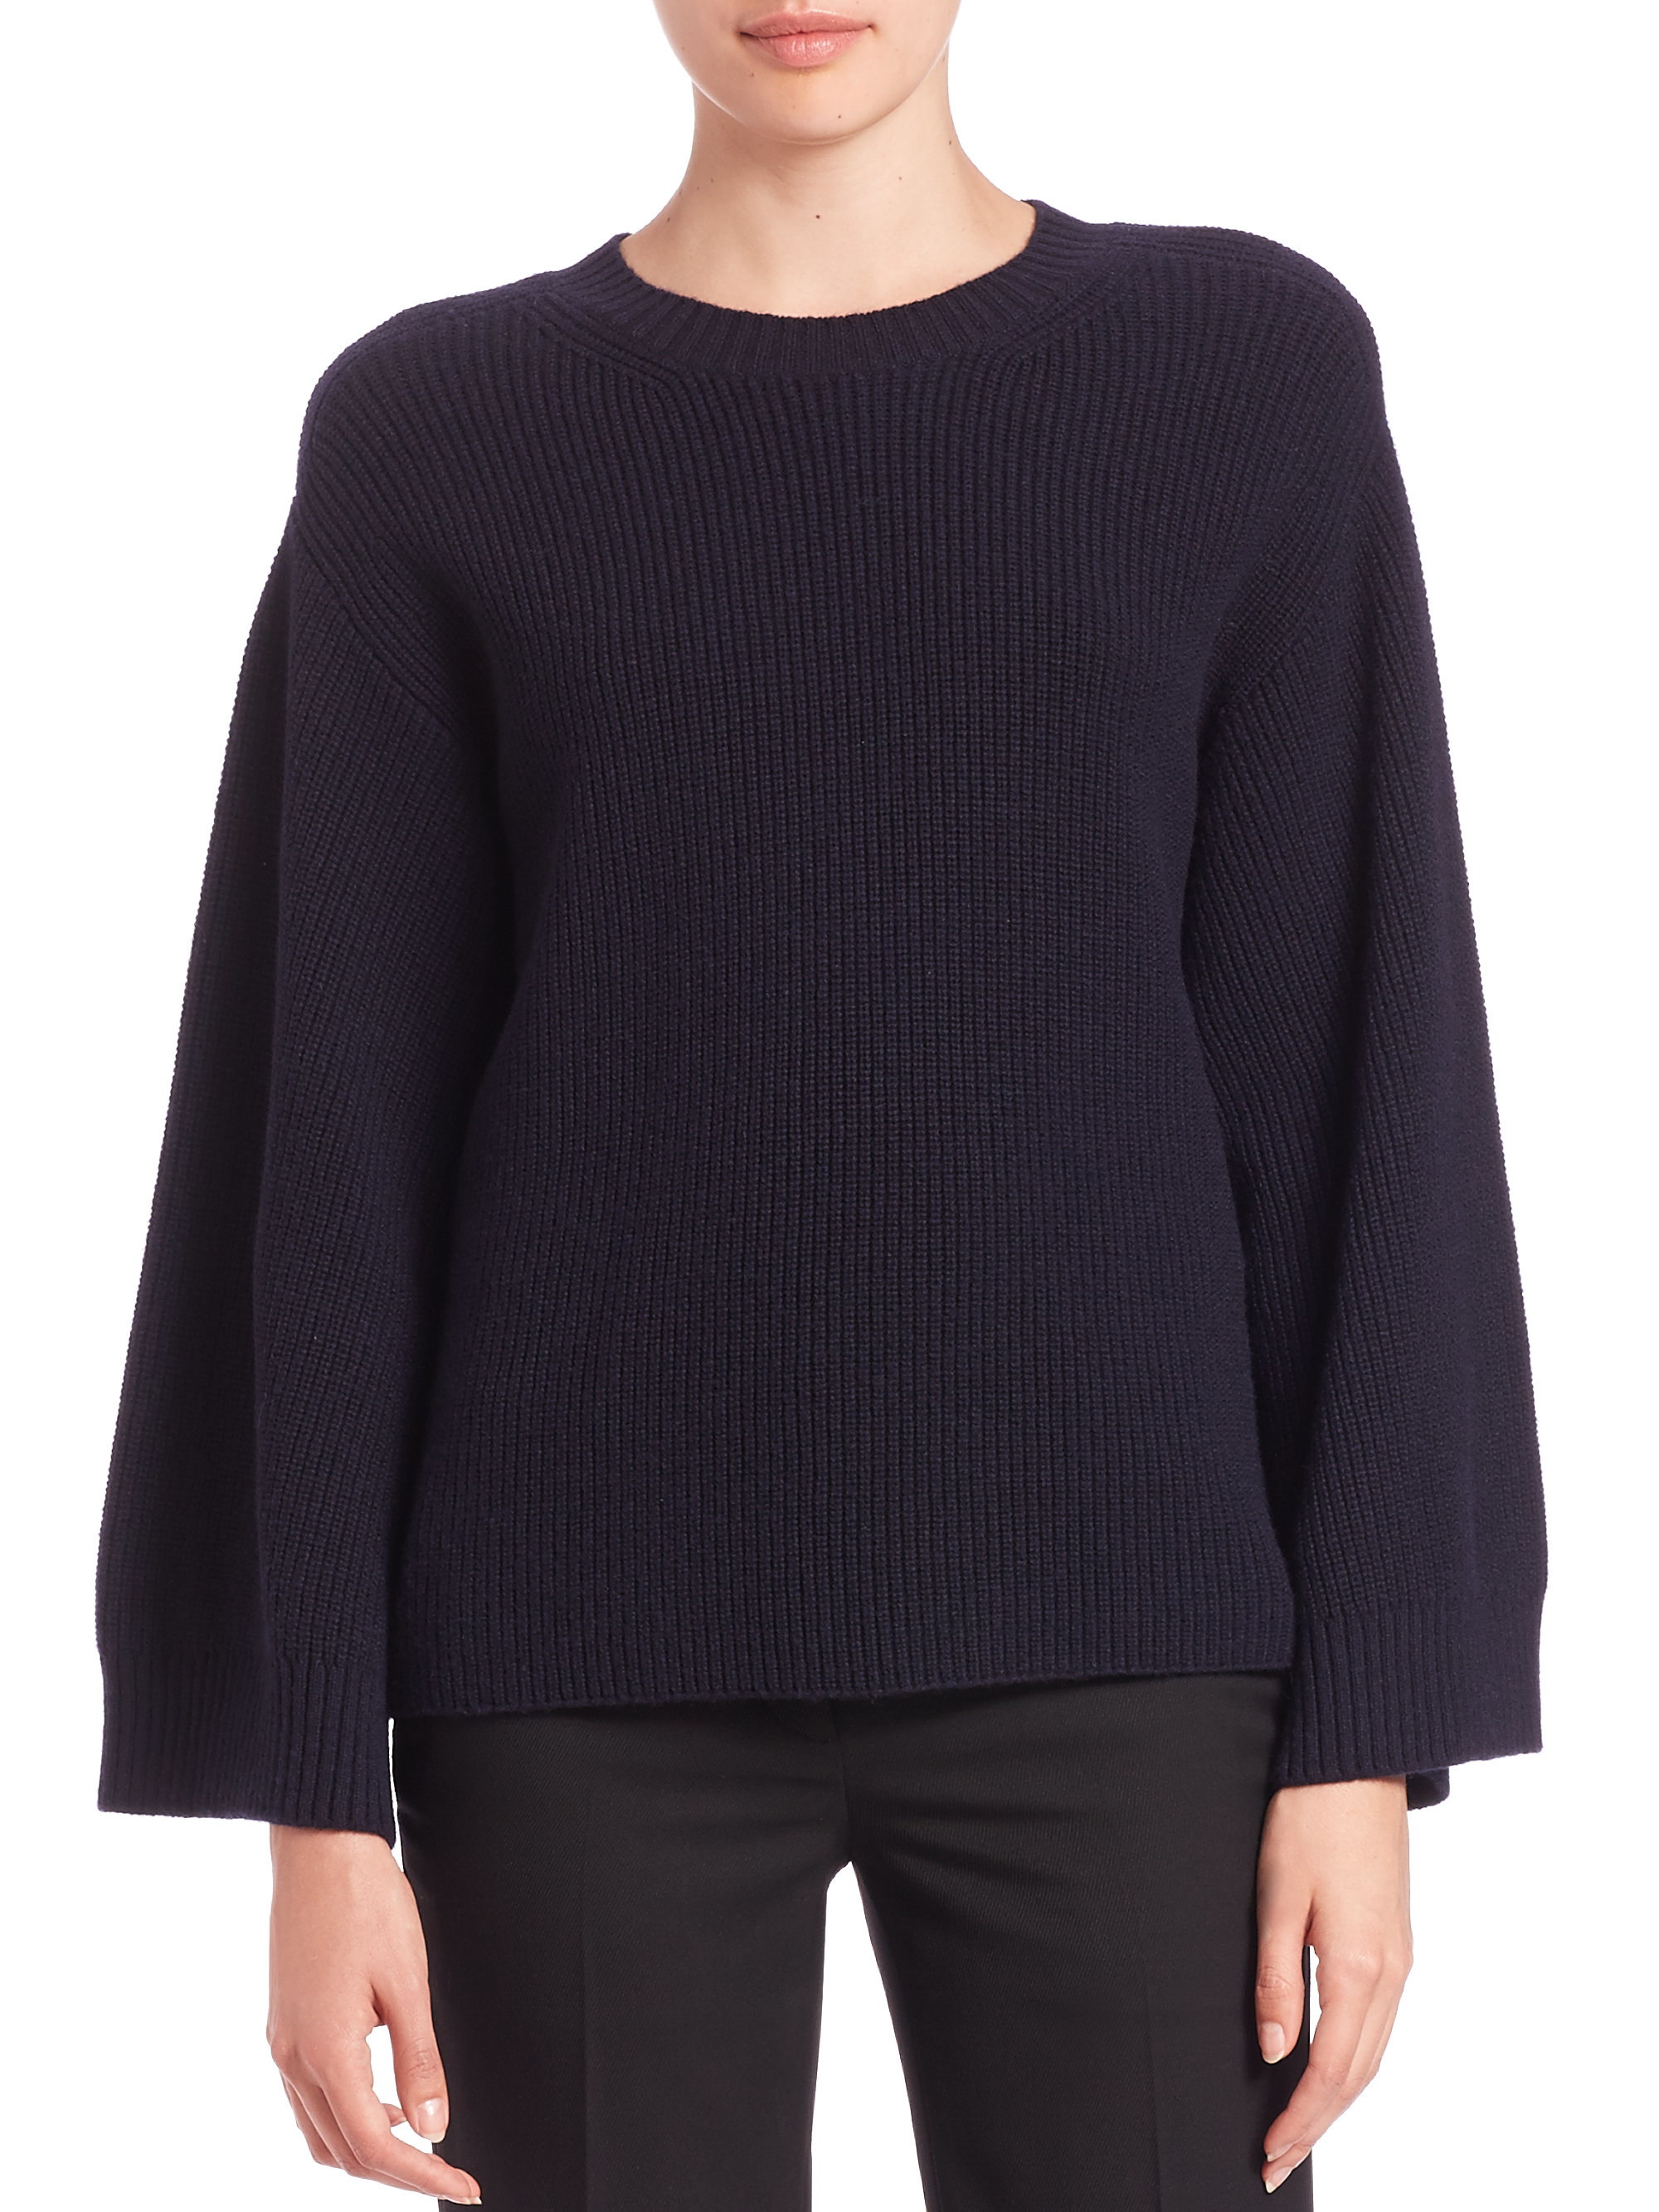 Helmut lang Wool & Cashmere Pullover Sweater in Blue | Lyst